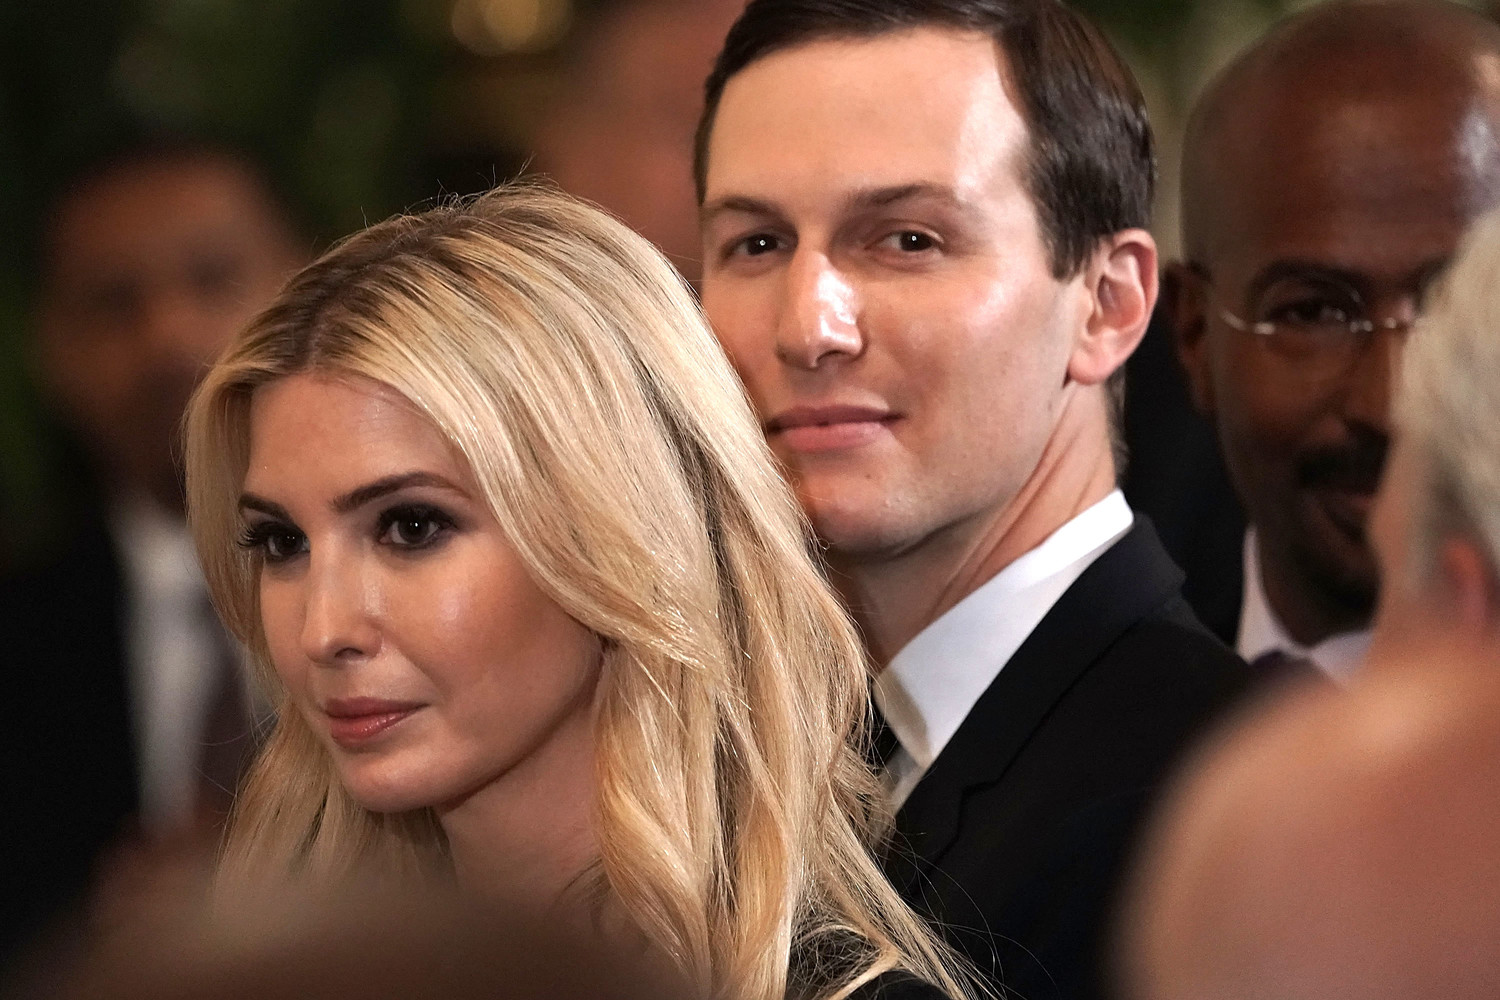 Ivanka Trump and Jared Kushner attend a White House summit, on May 18.